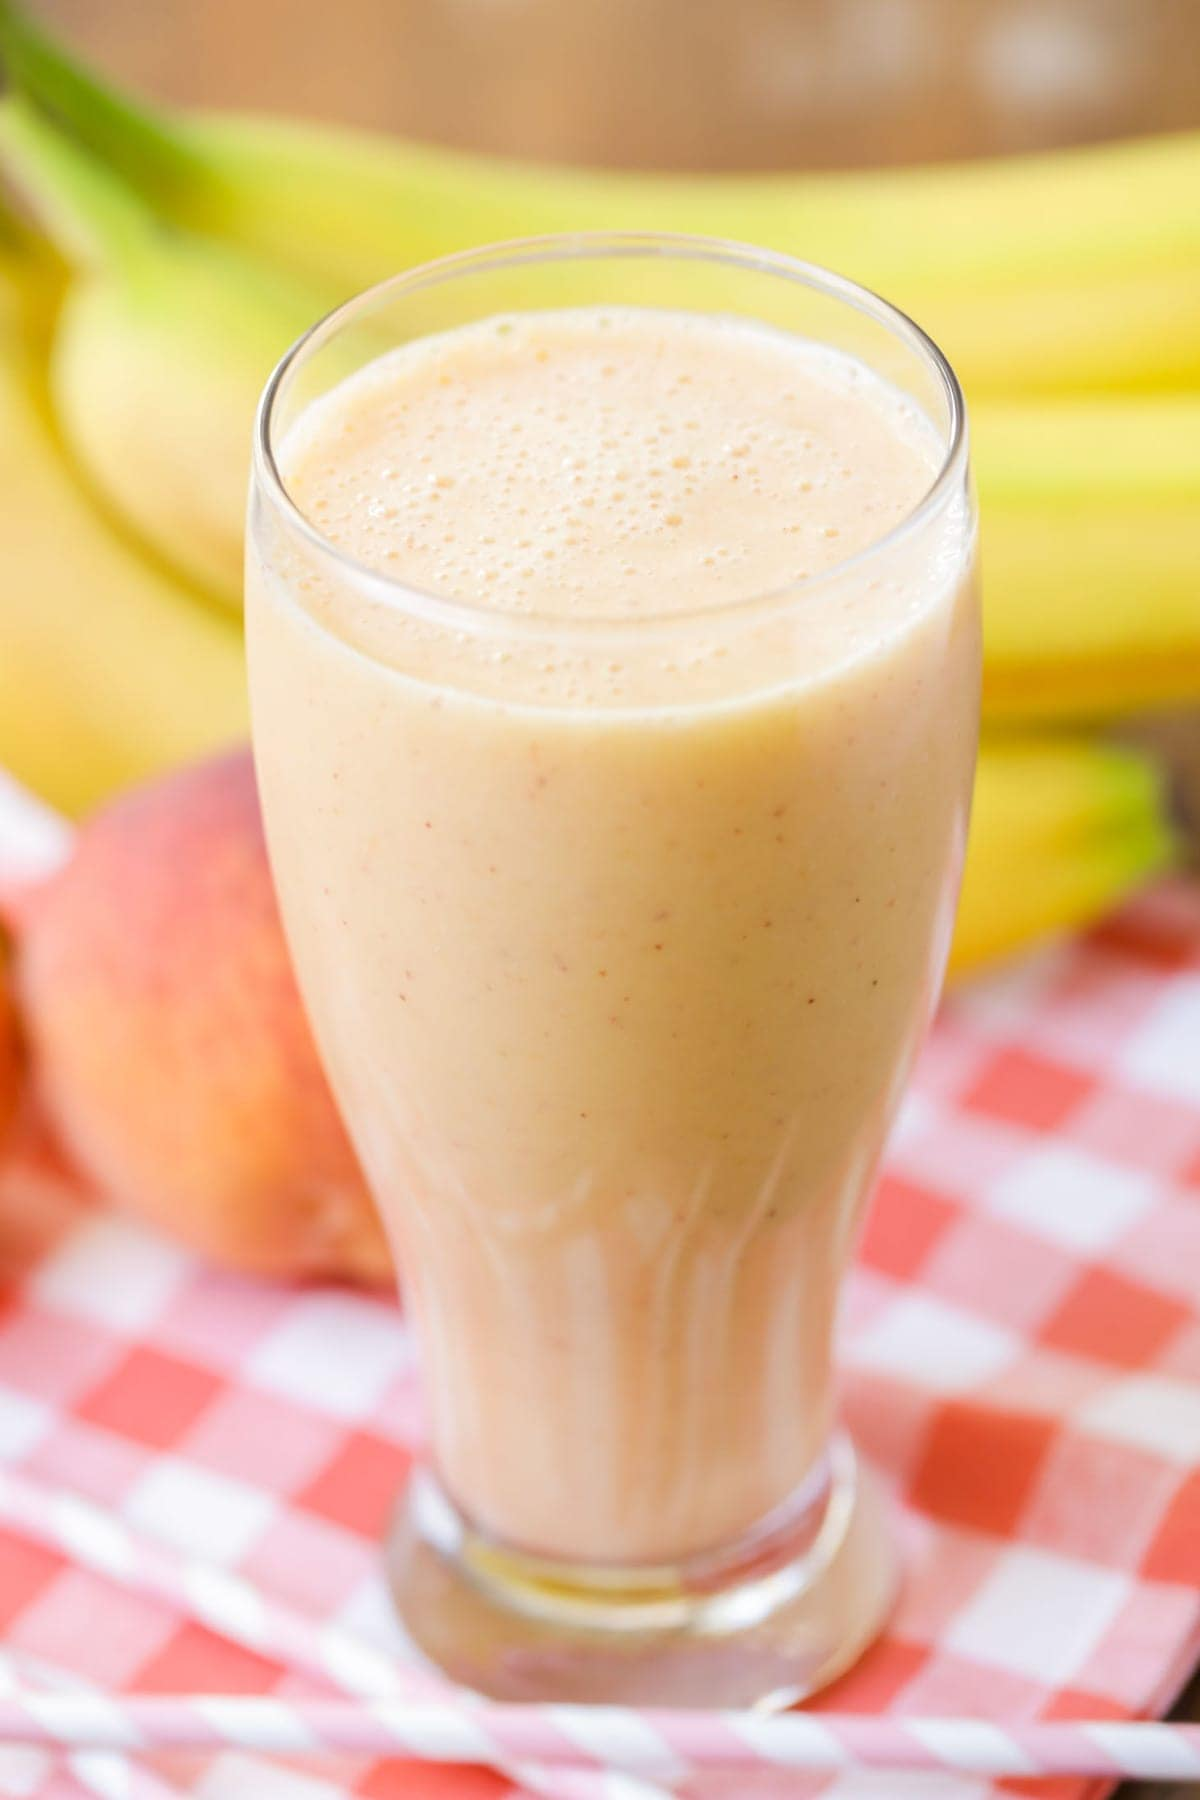 Peach Banana Smoothie in cup